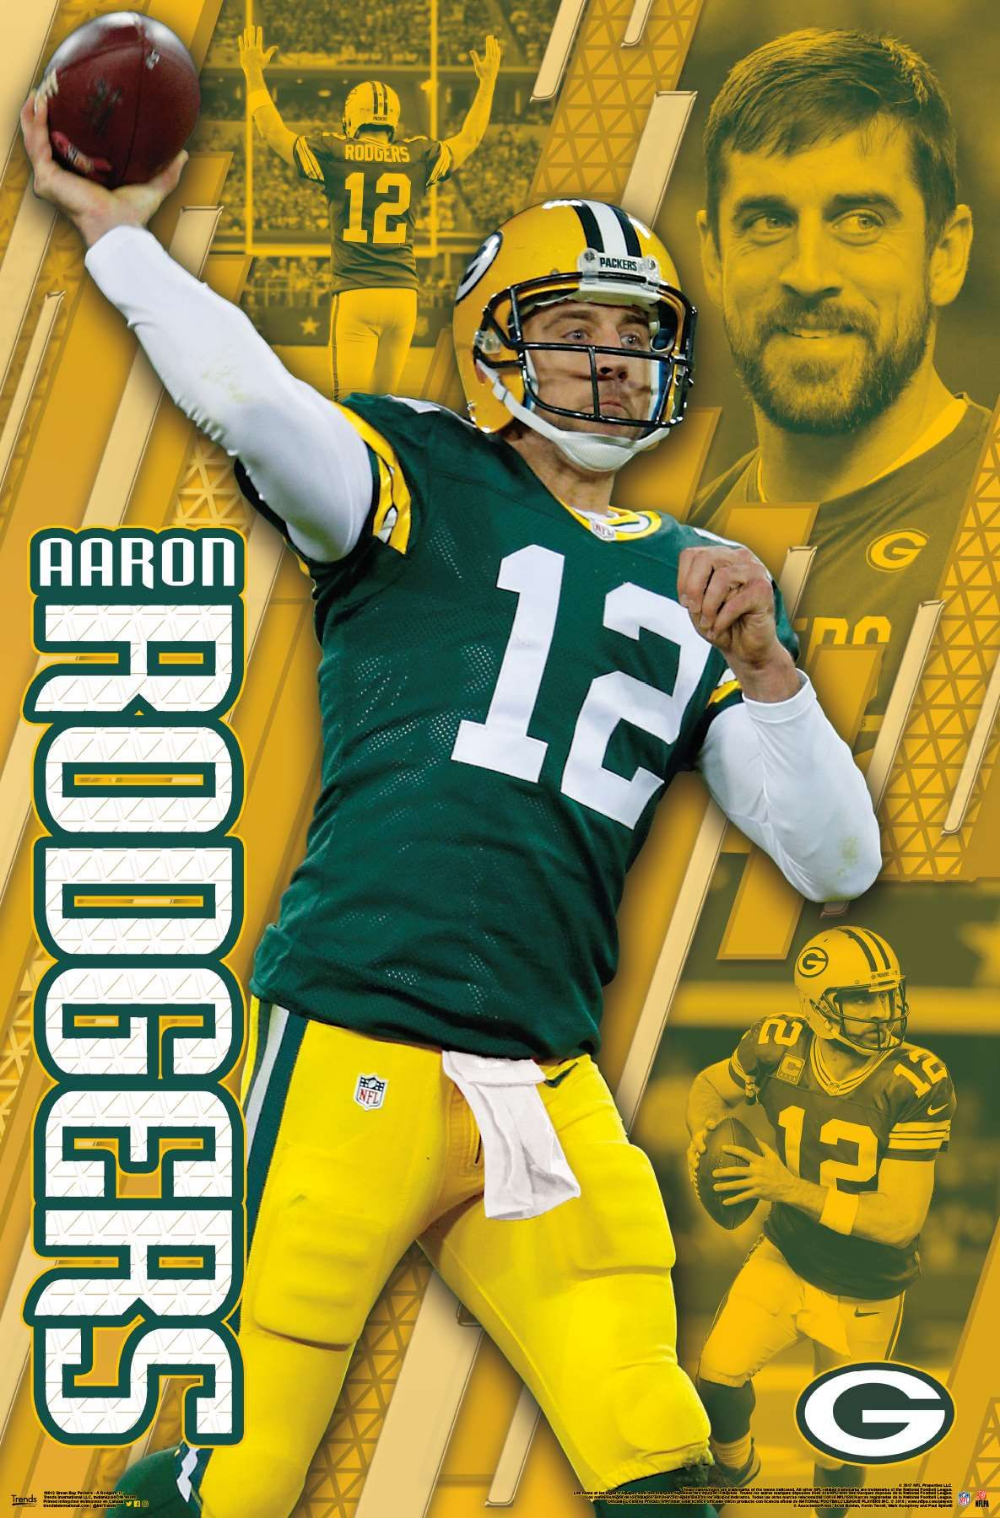 Green Bay Packers Aaron Rodgers Greenbaypackers Nflfootball Nfl Footballposter Footballparty Green Bay Packers Aaron Rodgers Aaron Rodgers Nfl Green Bay